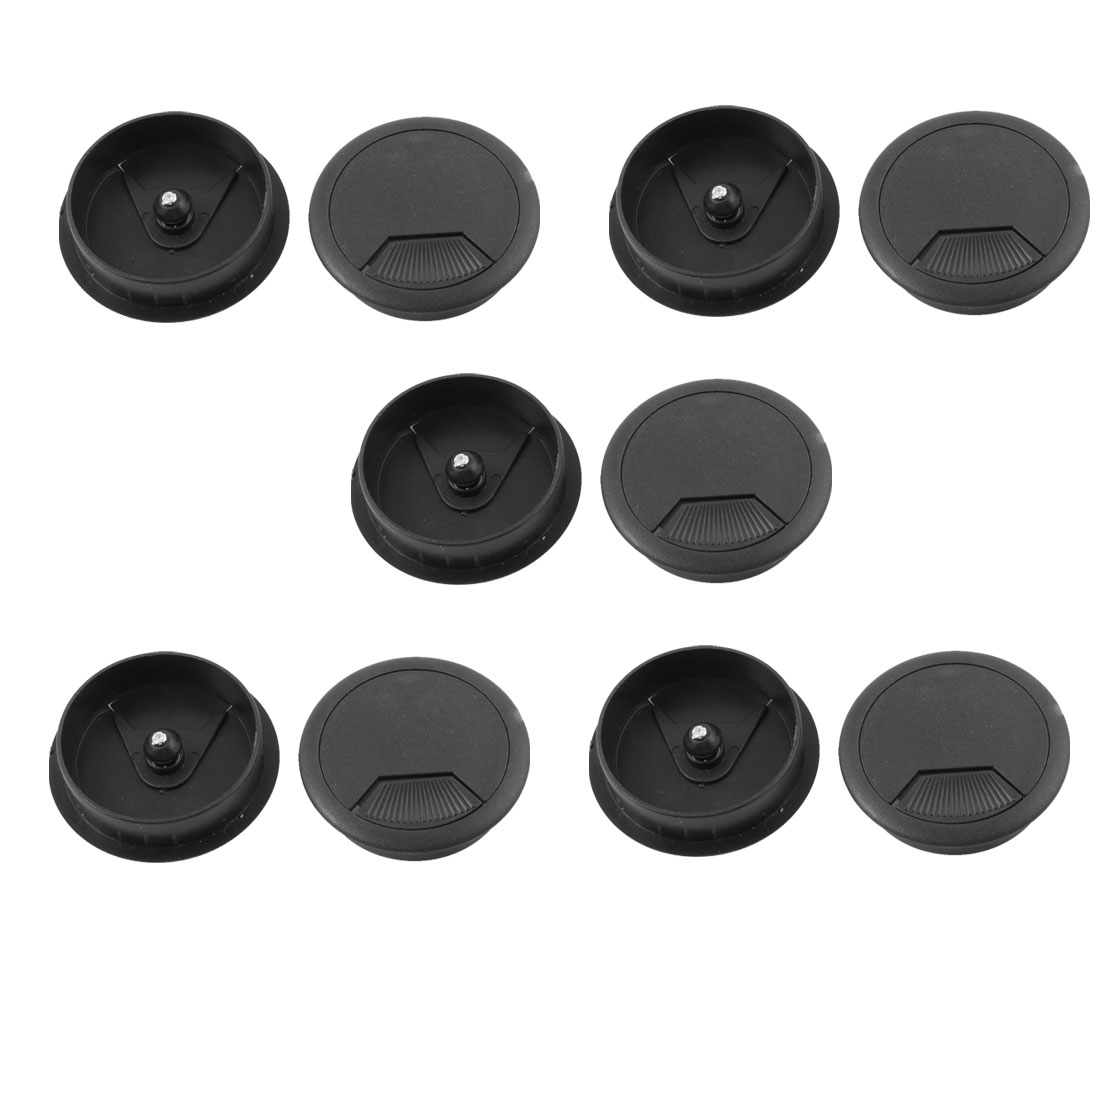 10pcs Office PC Computer Desk 50mm Diameter Grommet Cable Hole Cover Black